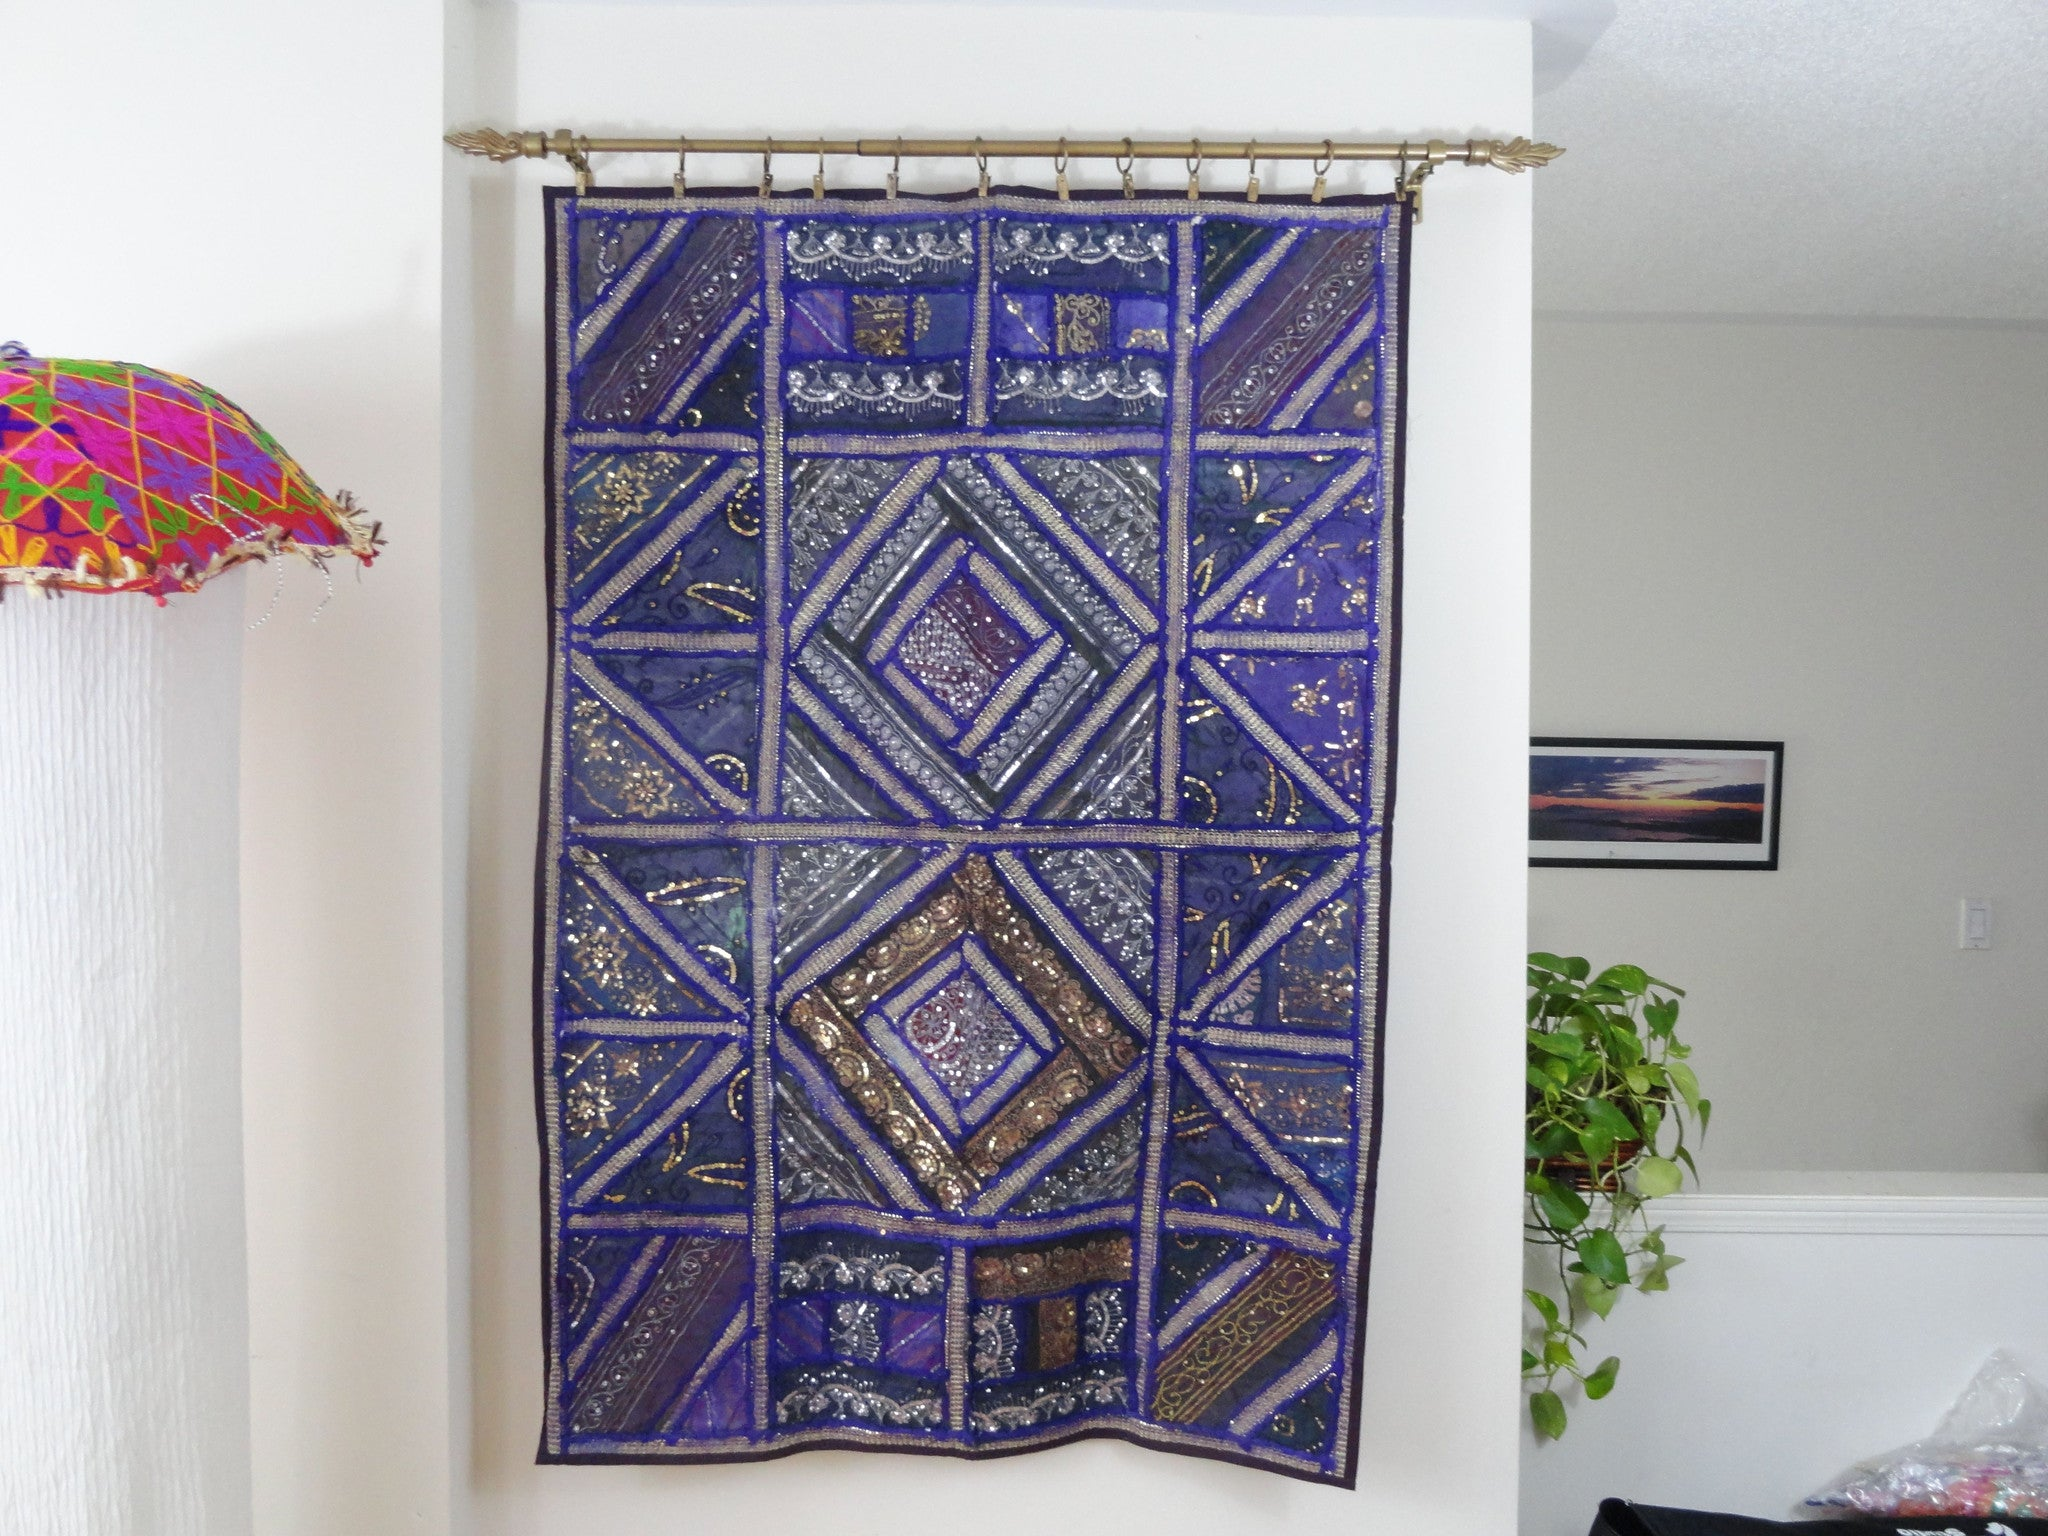 Nice Fabric Wall Tapestry. Wall Hanging. Purple Strokes Embroidery And Patchwork Wall  Decor. Indian Ethnic Wall Tapestry Artikrti Pictures Gallery